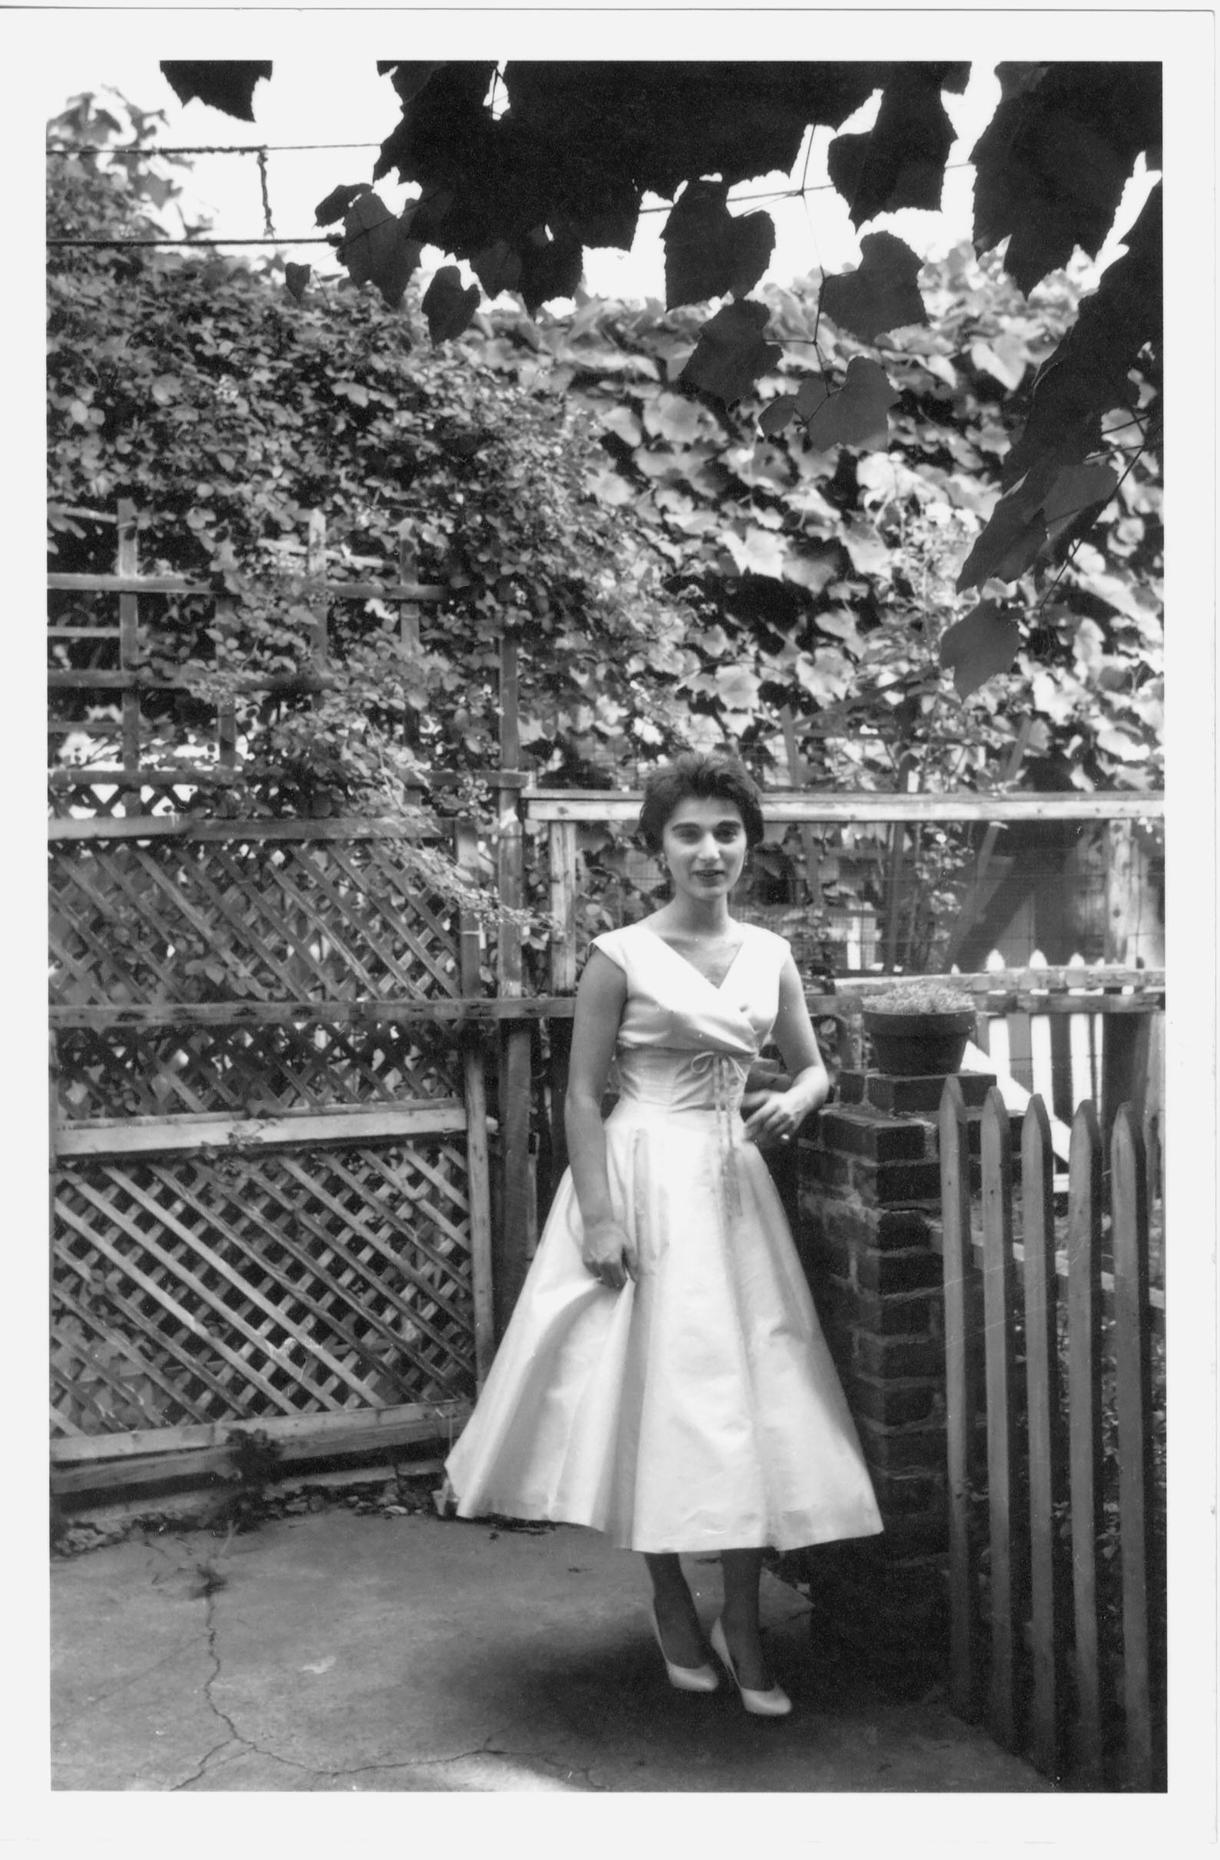 Those who knew Kitty Genovese remembered a charming, charismatic young woman. (photo courtesy Kew Gardens resident Joe Corrado)